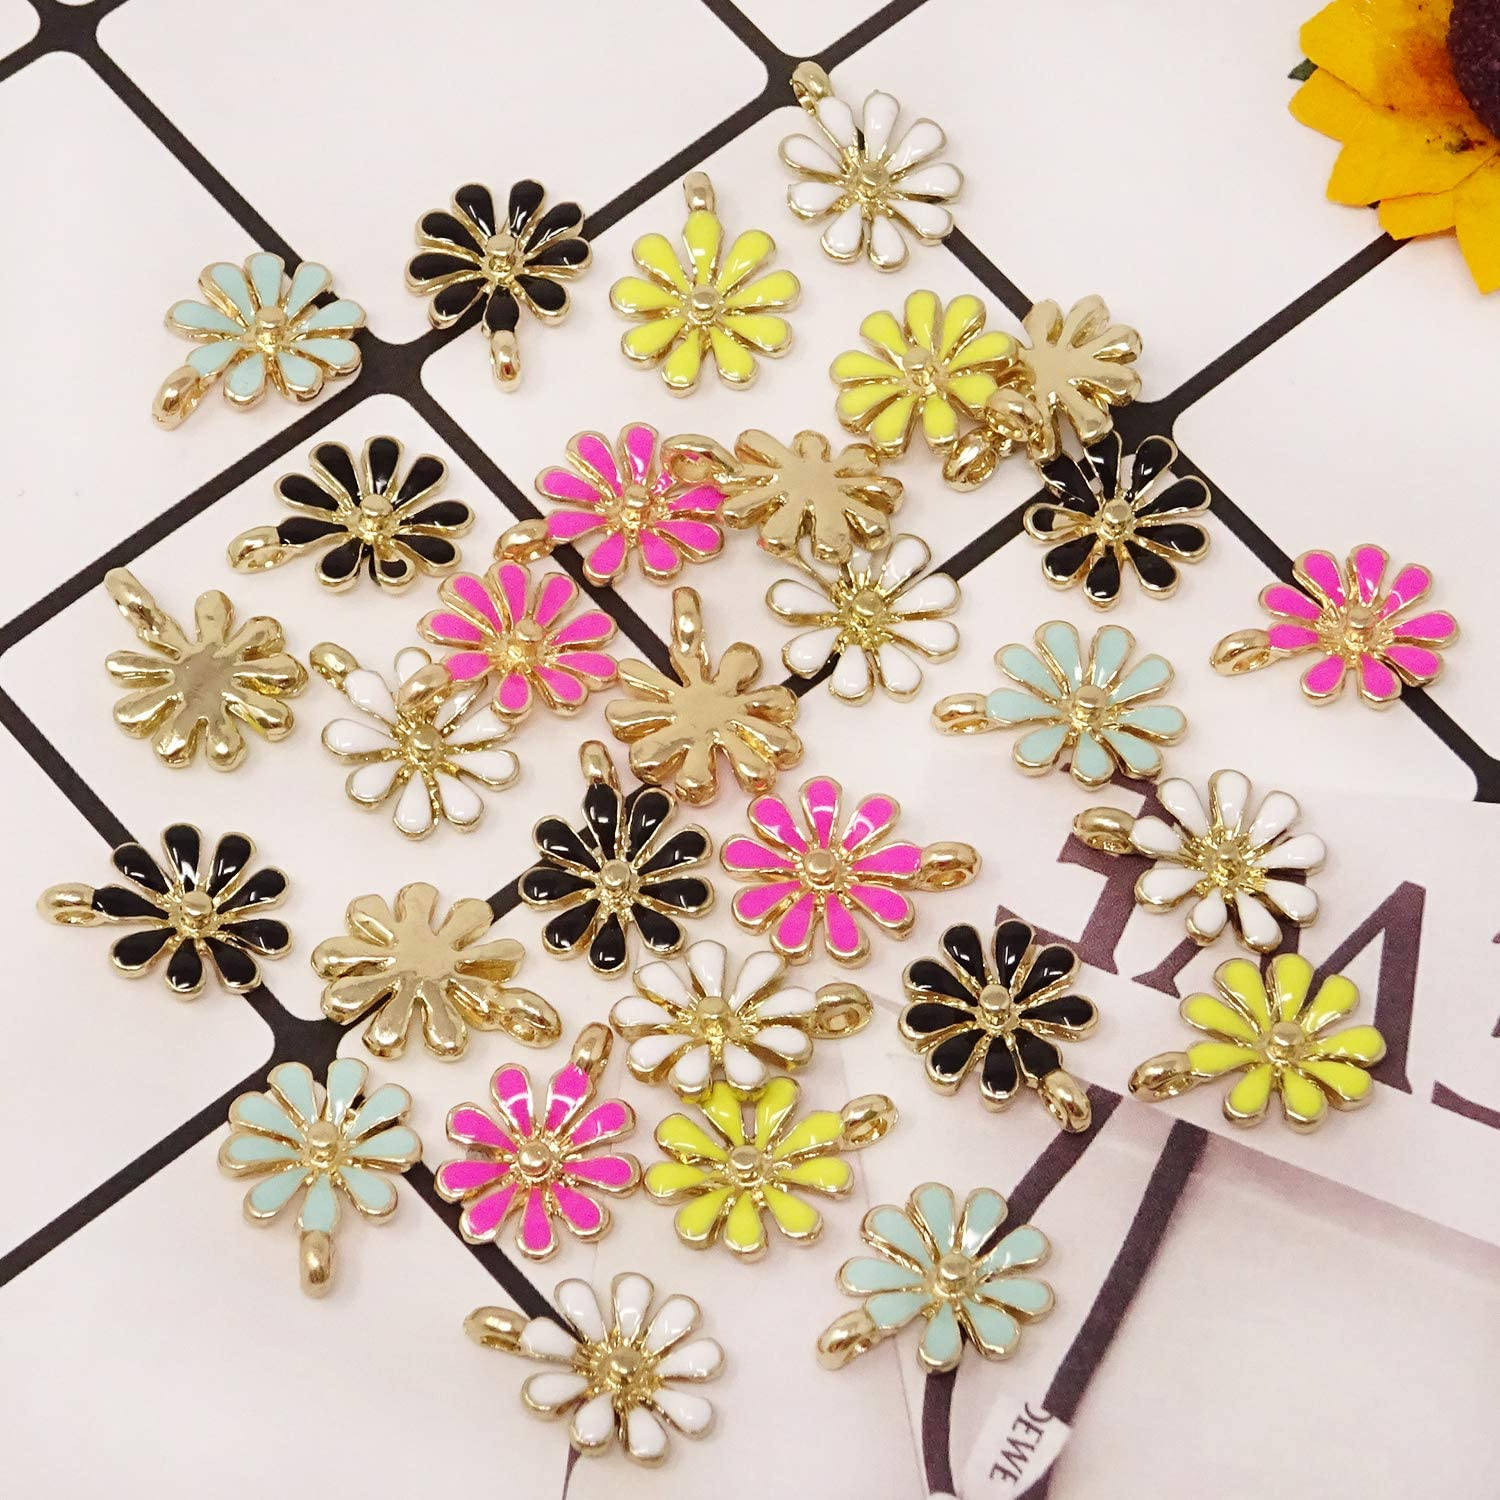 Honbay 30PCS Enamel Daisy Flower Charm Pendant for Jewelry Making or DIY Crafts